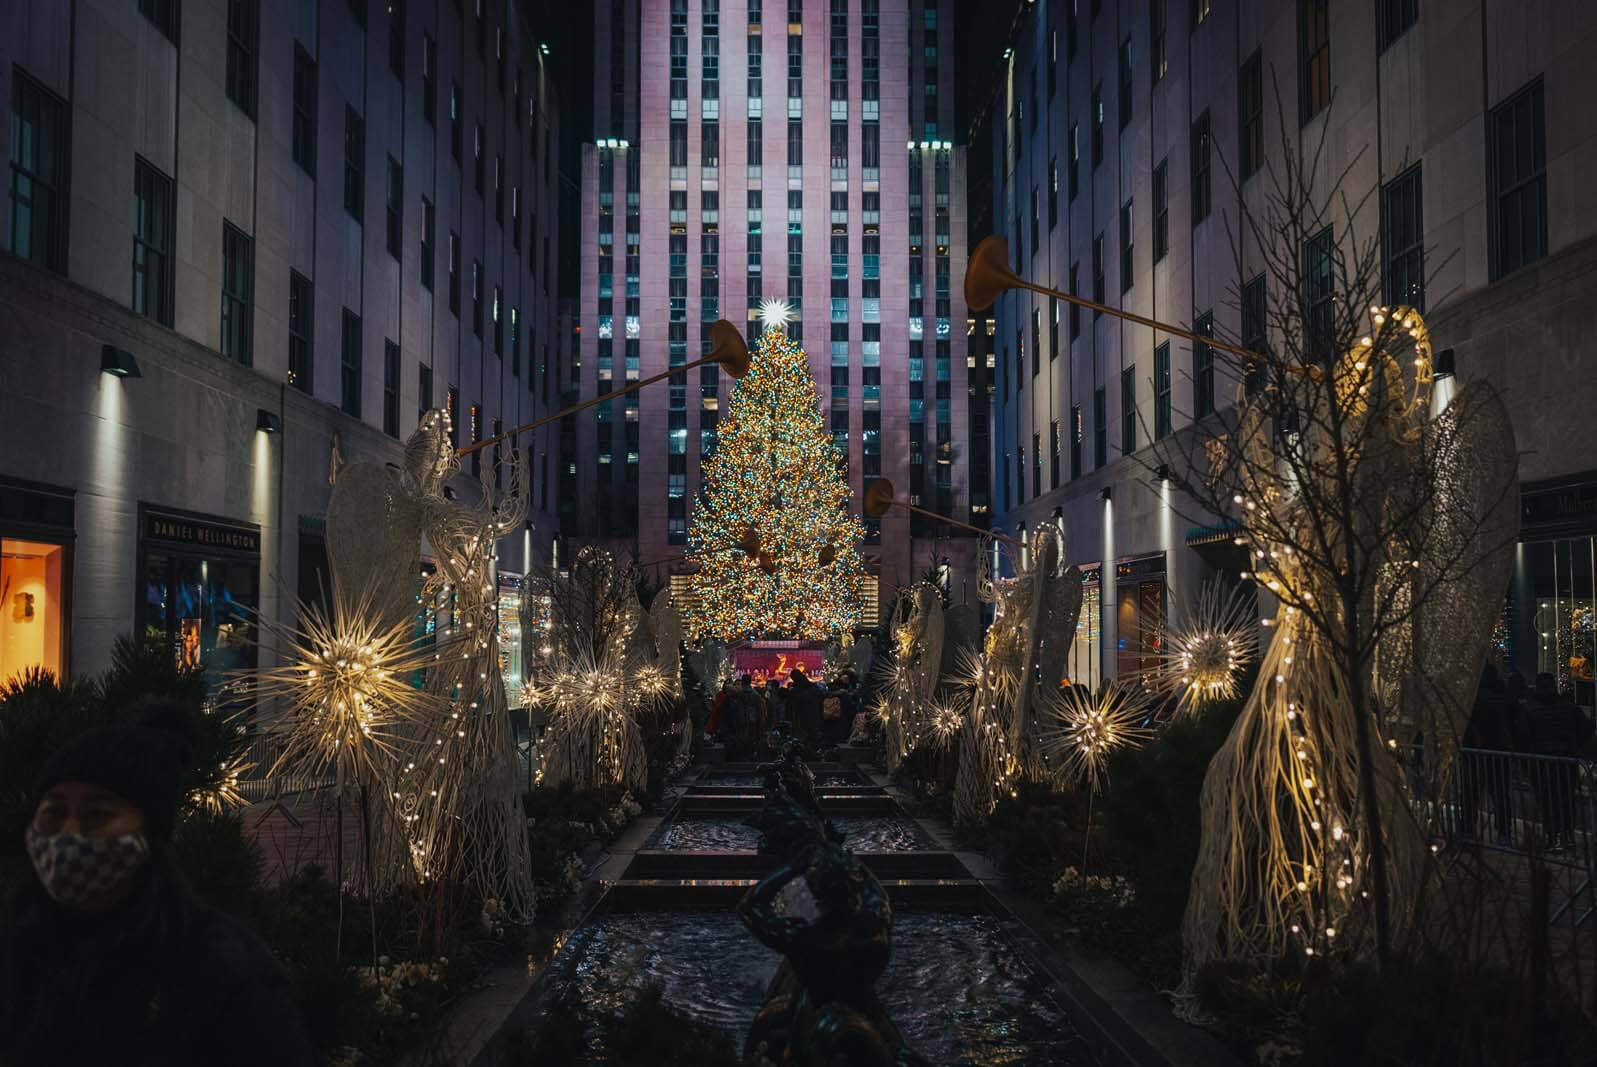 Rockefeller Center Christmas Tree in Manhattan NYC